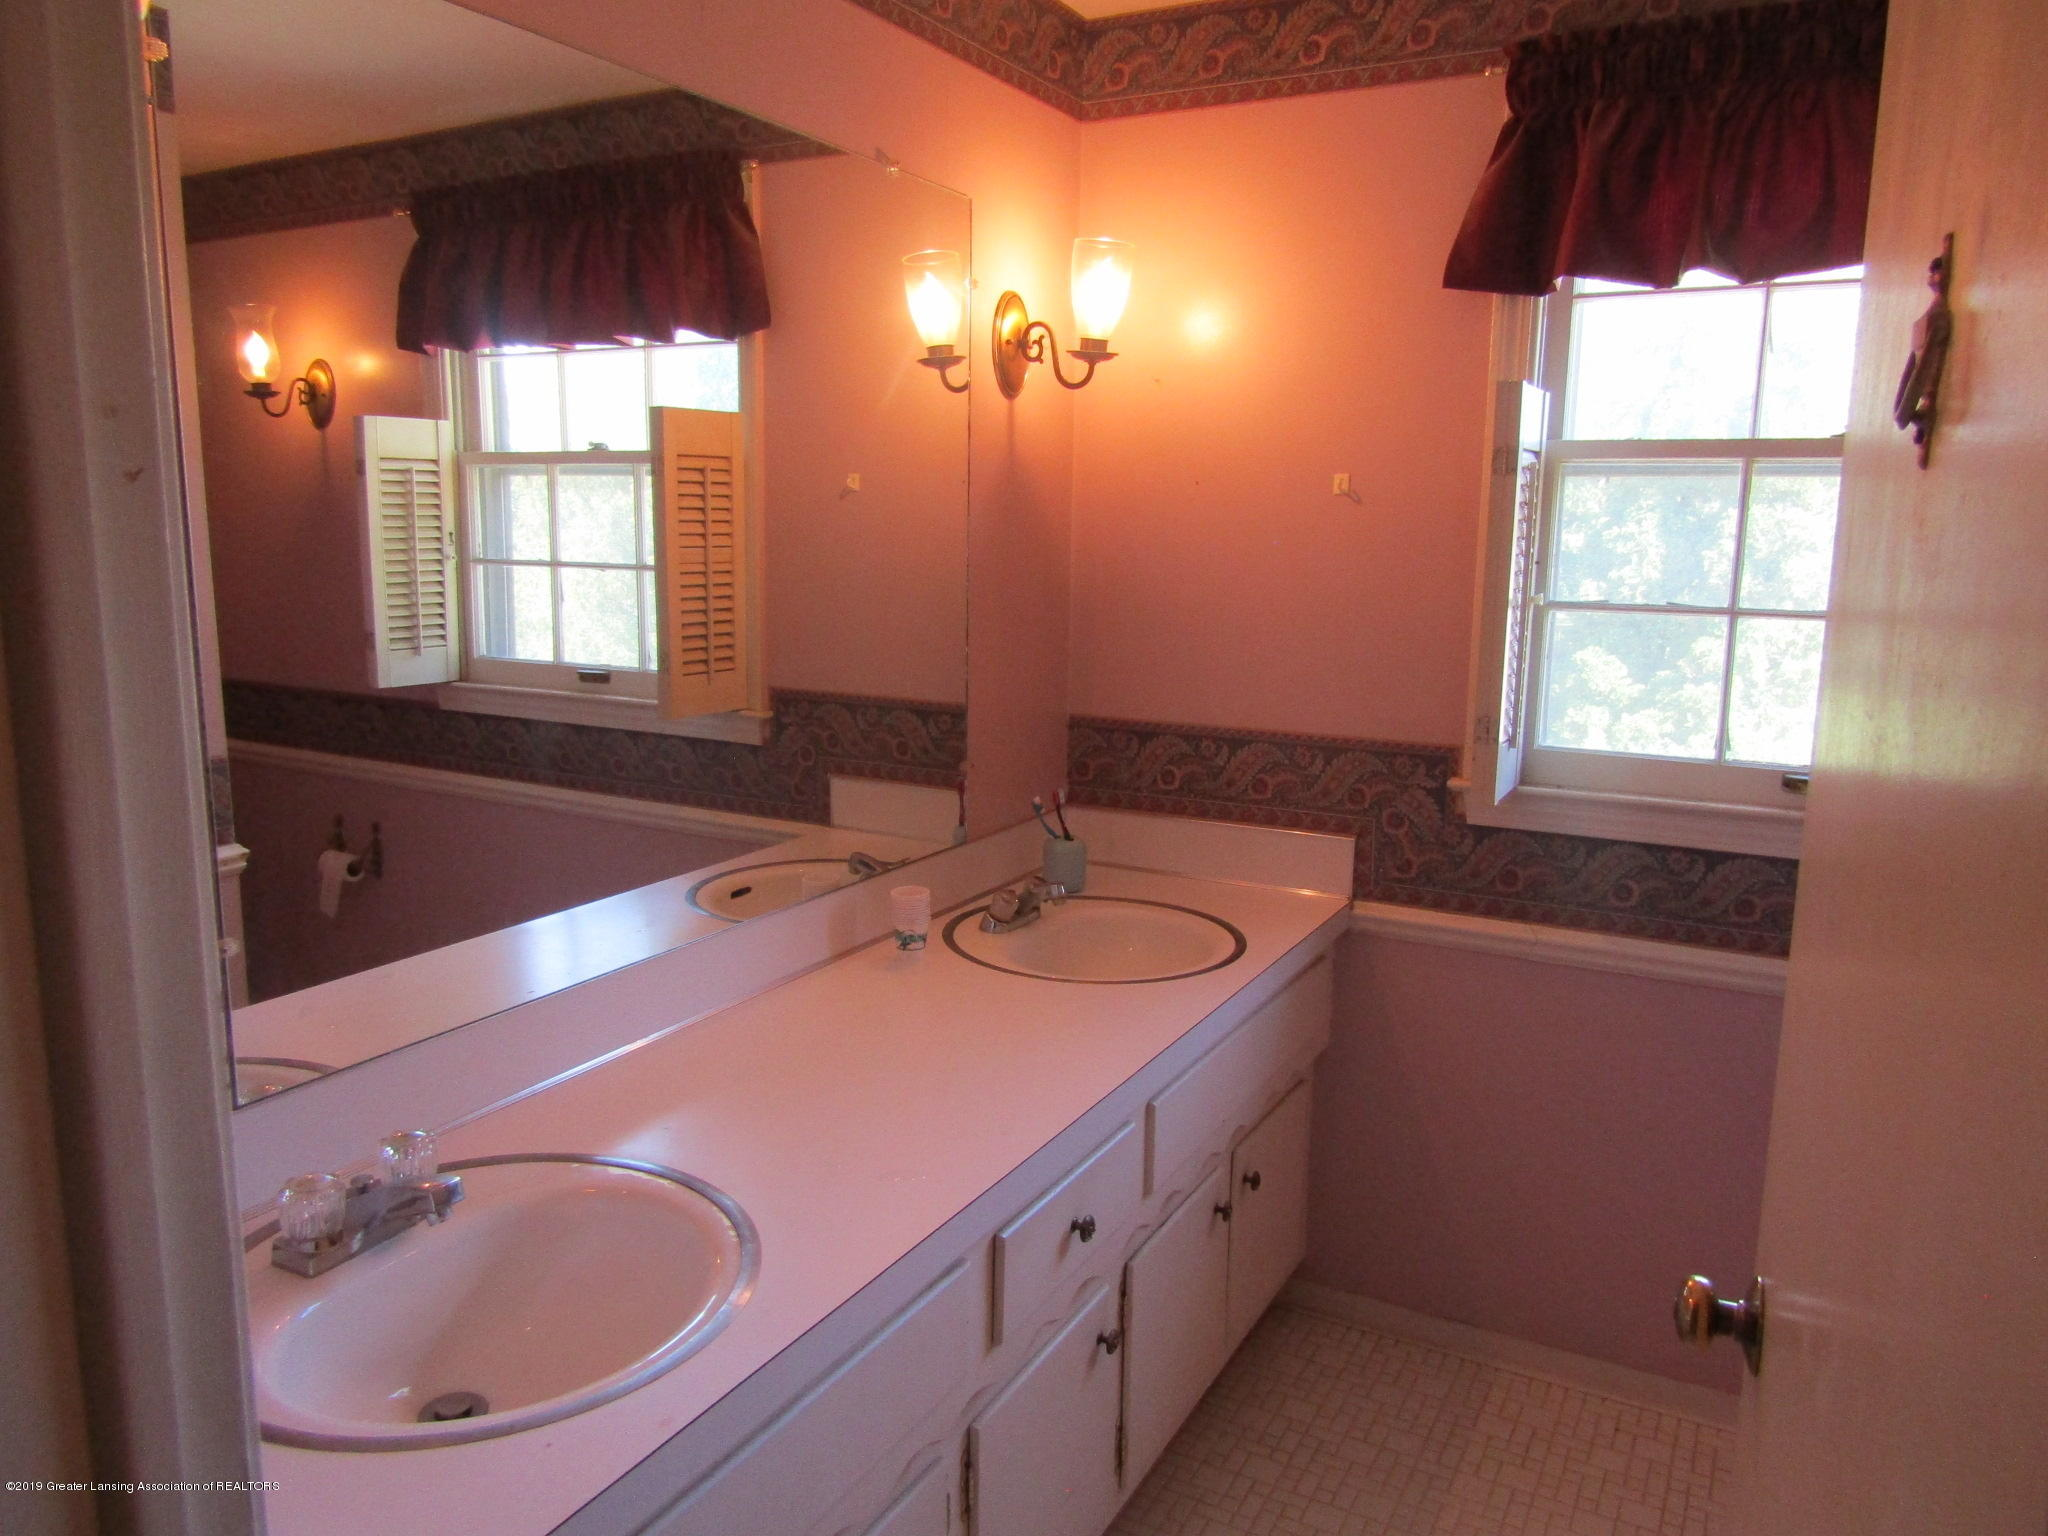 2621 S Waverly Rd - Dual vanities - 40